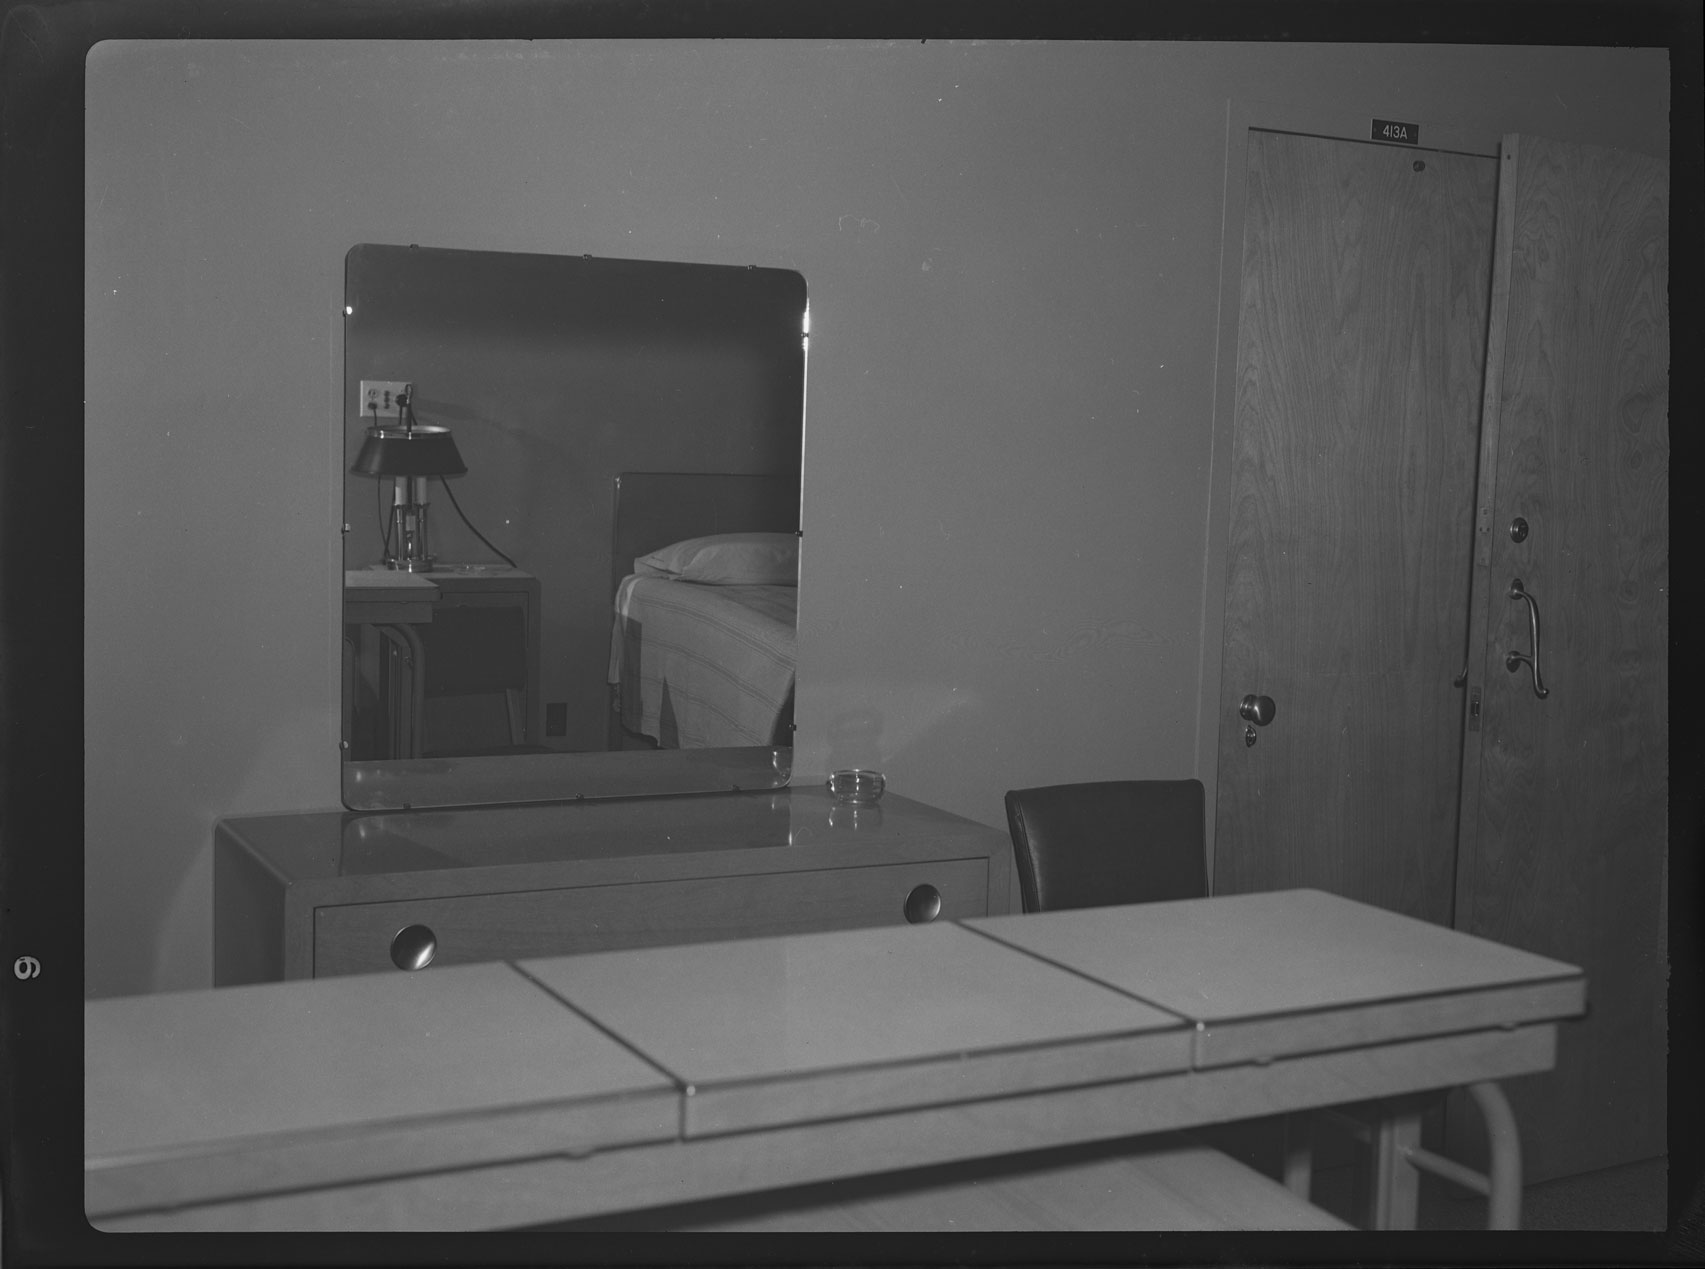 Double Patient Room in the U.S. Naval Hospital, interior view